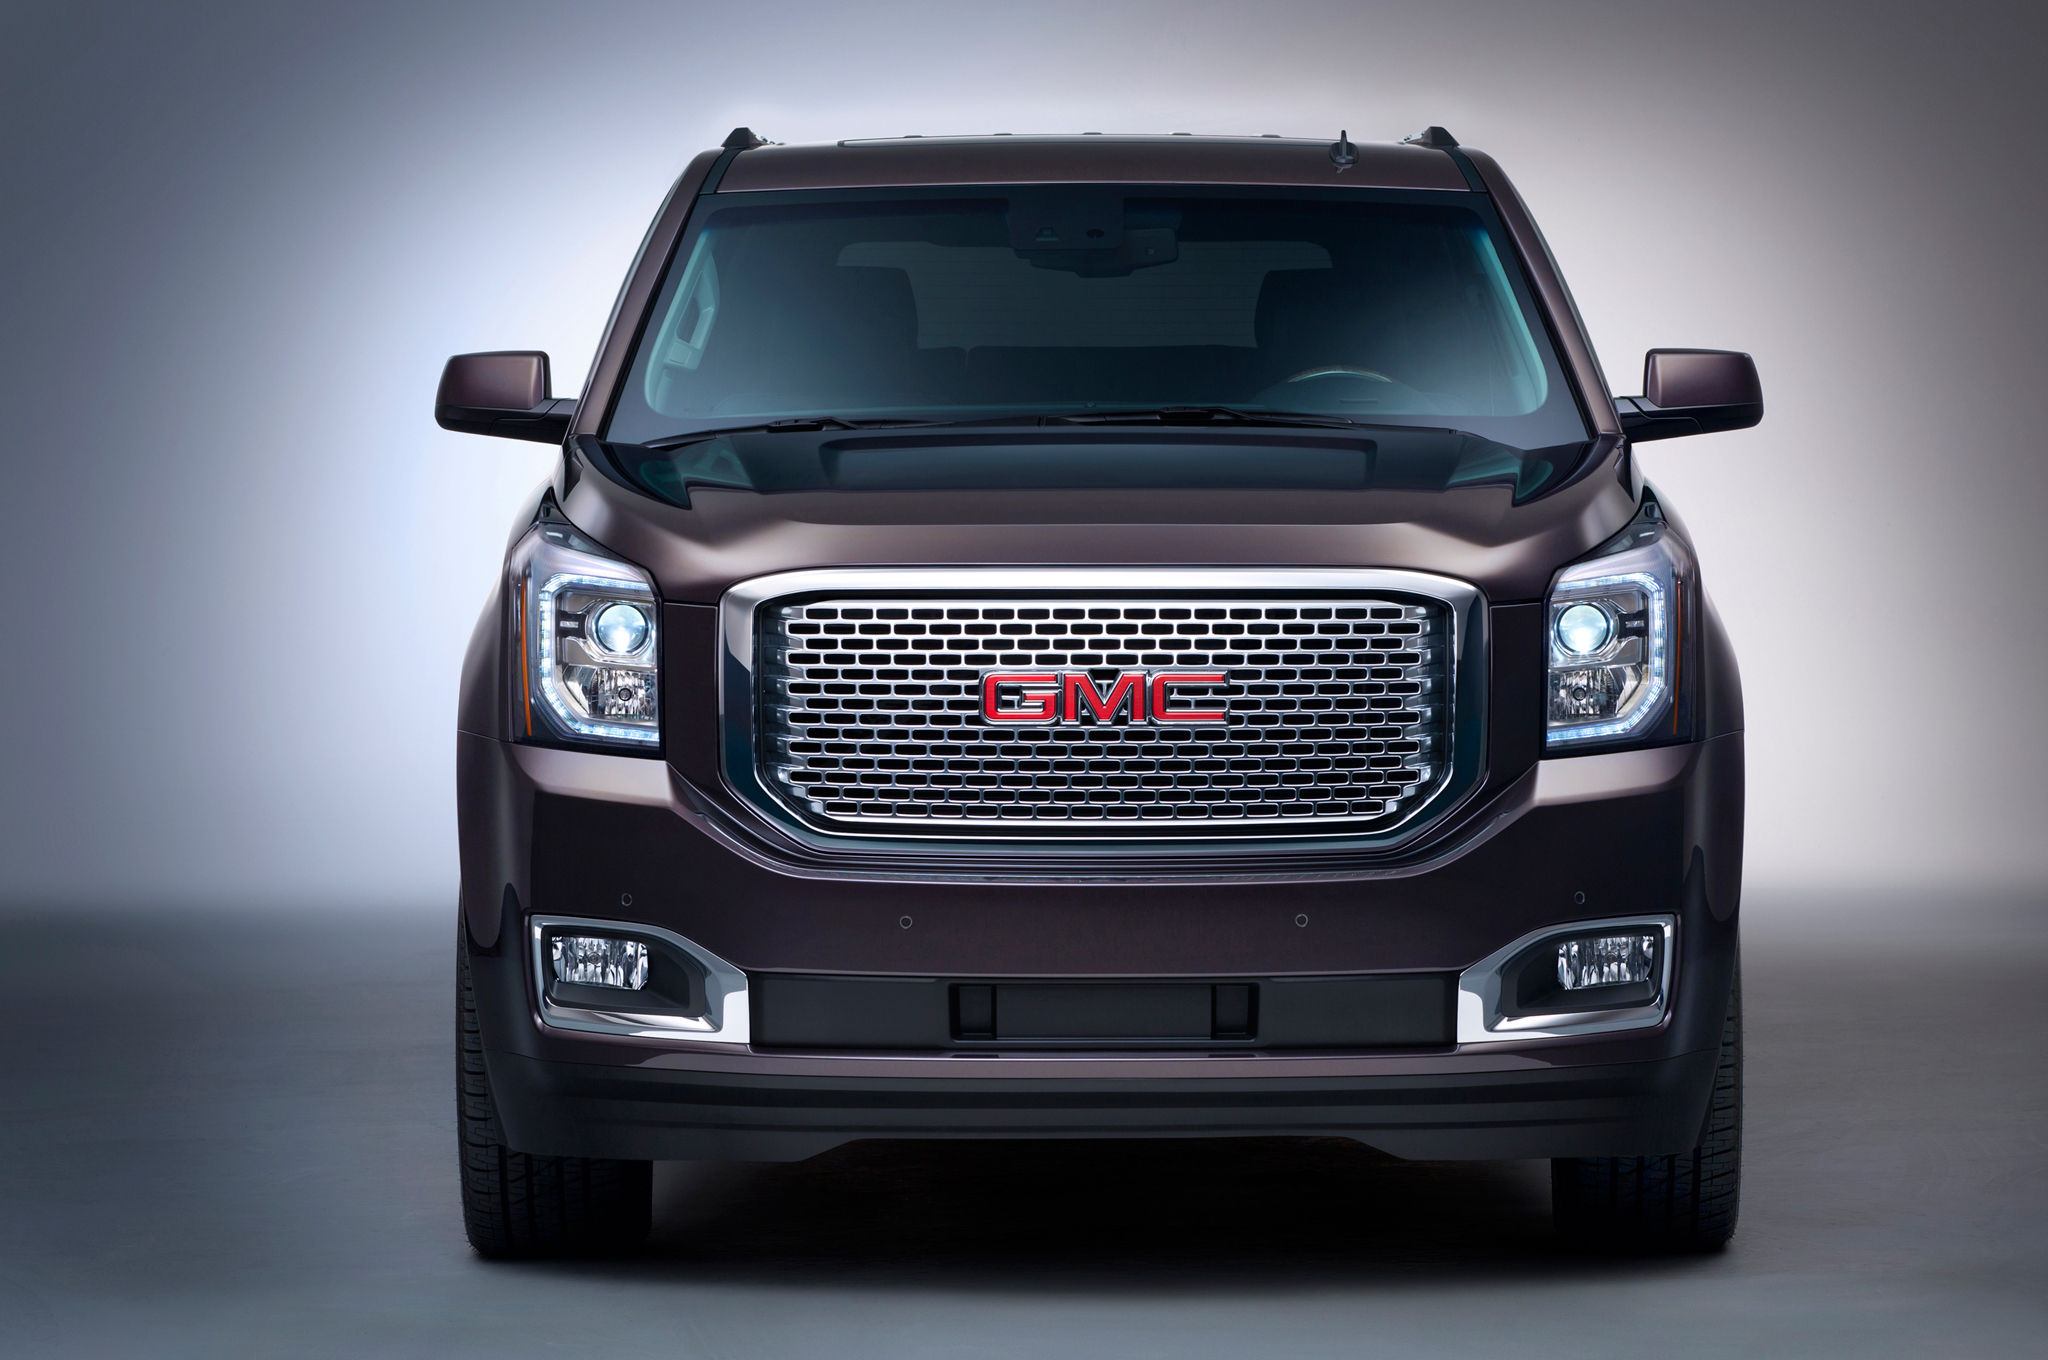 2015 Gmc Yukon Xl Front Grille View (Photo 6 of 10)